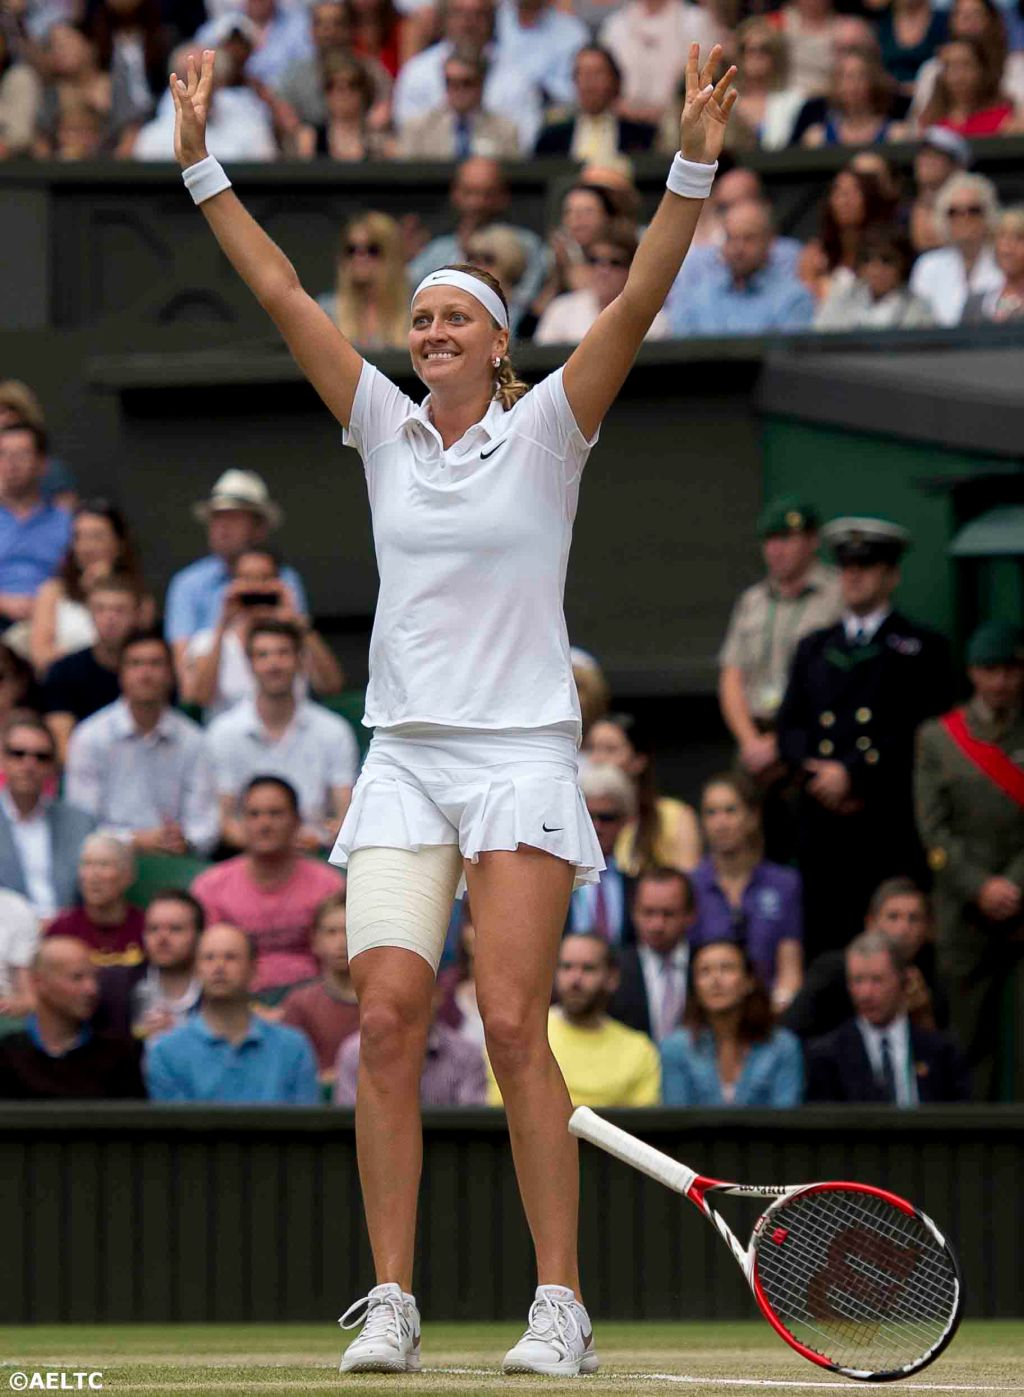 """Petra Kvitova reacts after winning the ladies' singles final against Eugenie Bouchard on Centre Court at the All England Lawn and Tennis Club in London, England Saturday, July 5, 2014 during the 2014 Championships Wimbledon."""